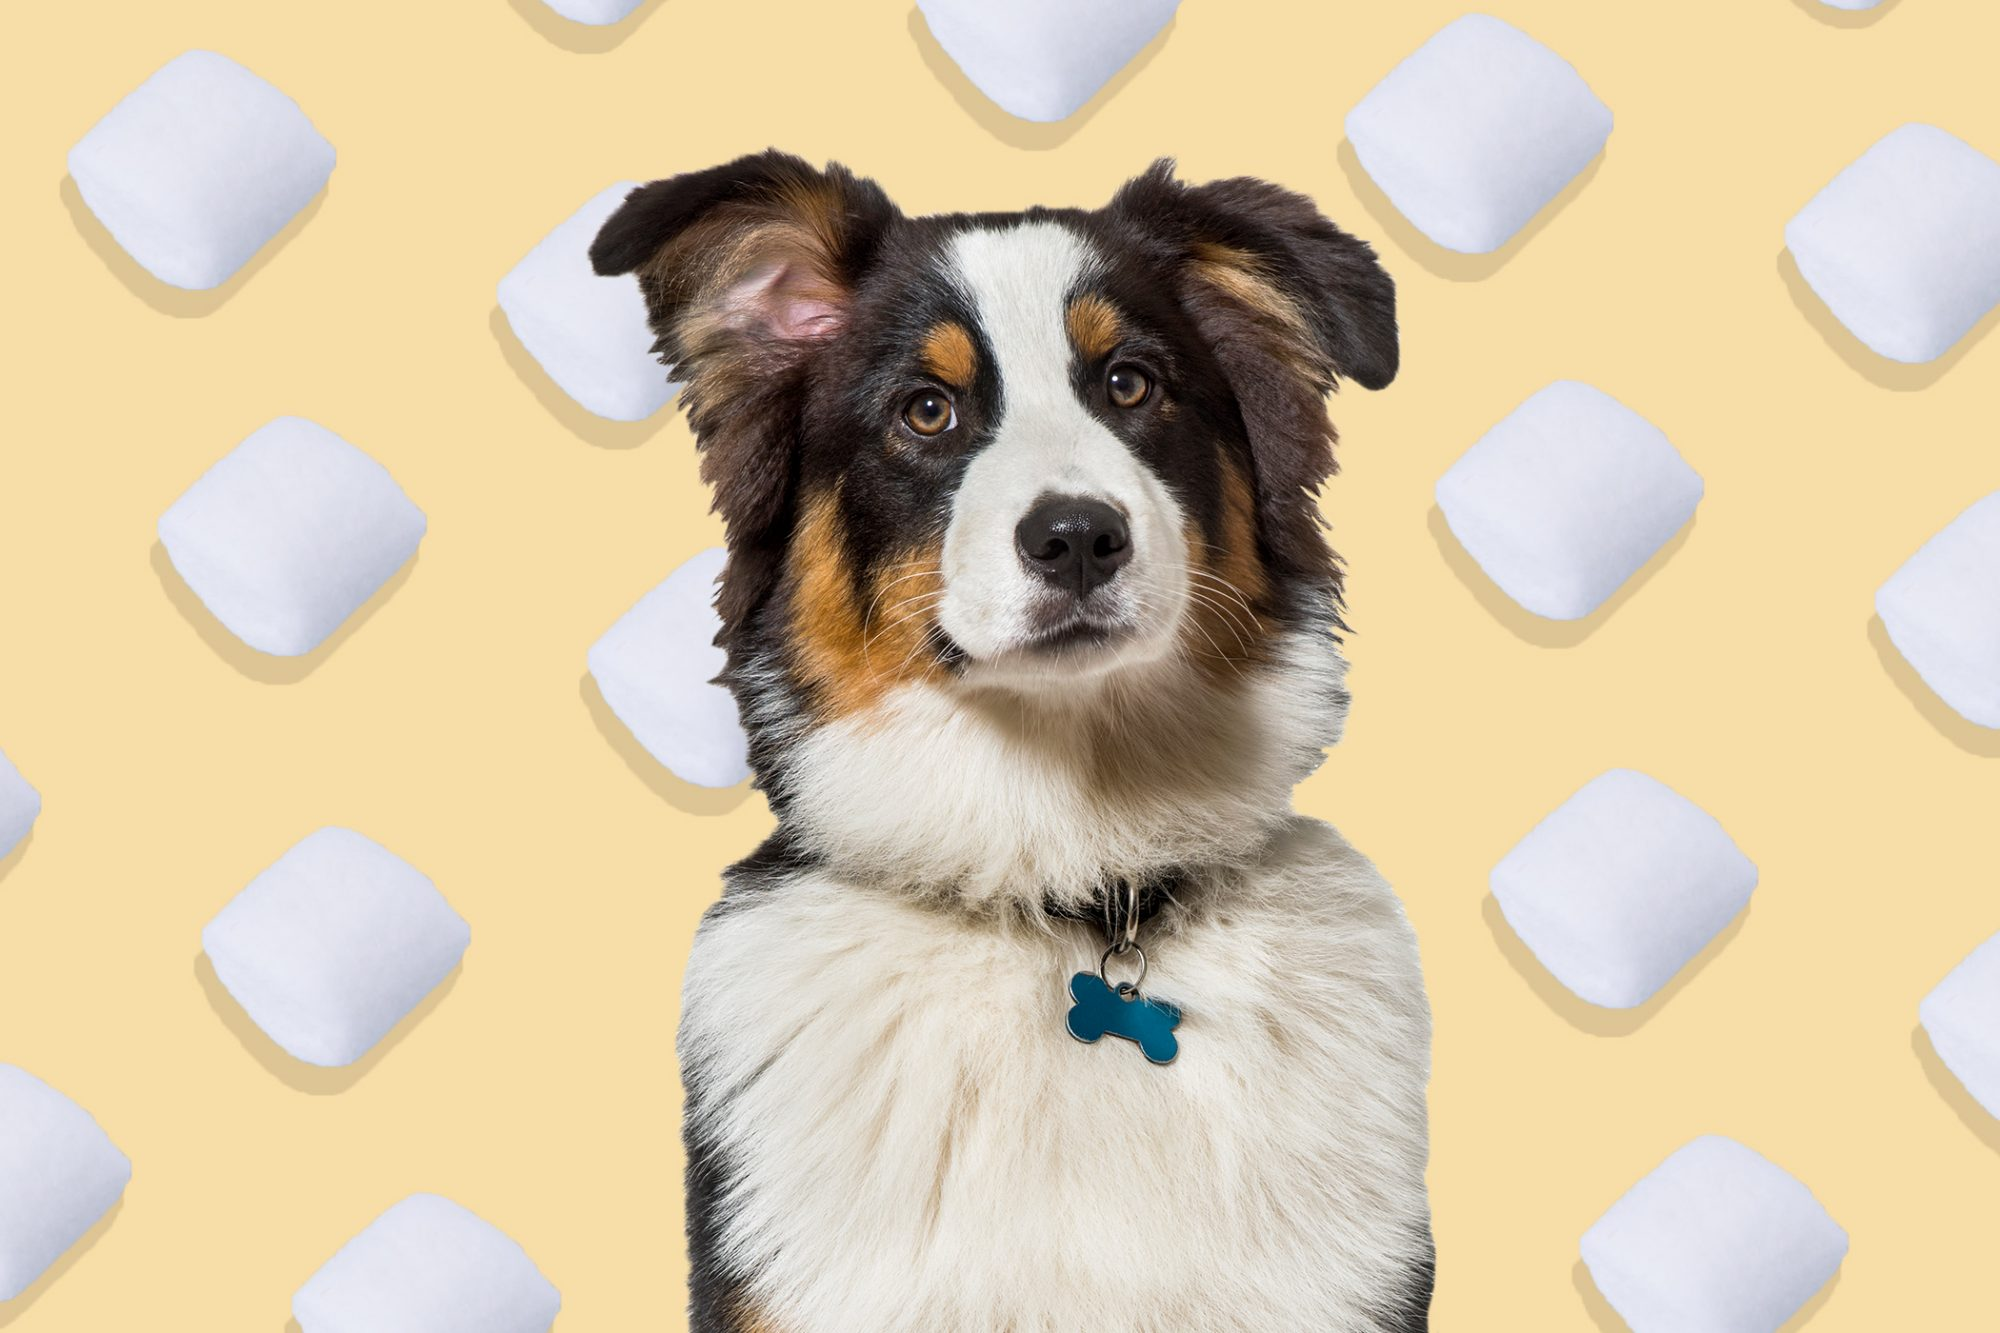 White, orange and black collie sits in front of marshmallow illustration background